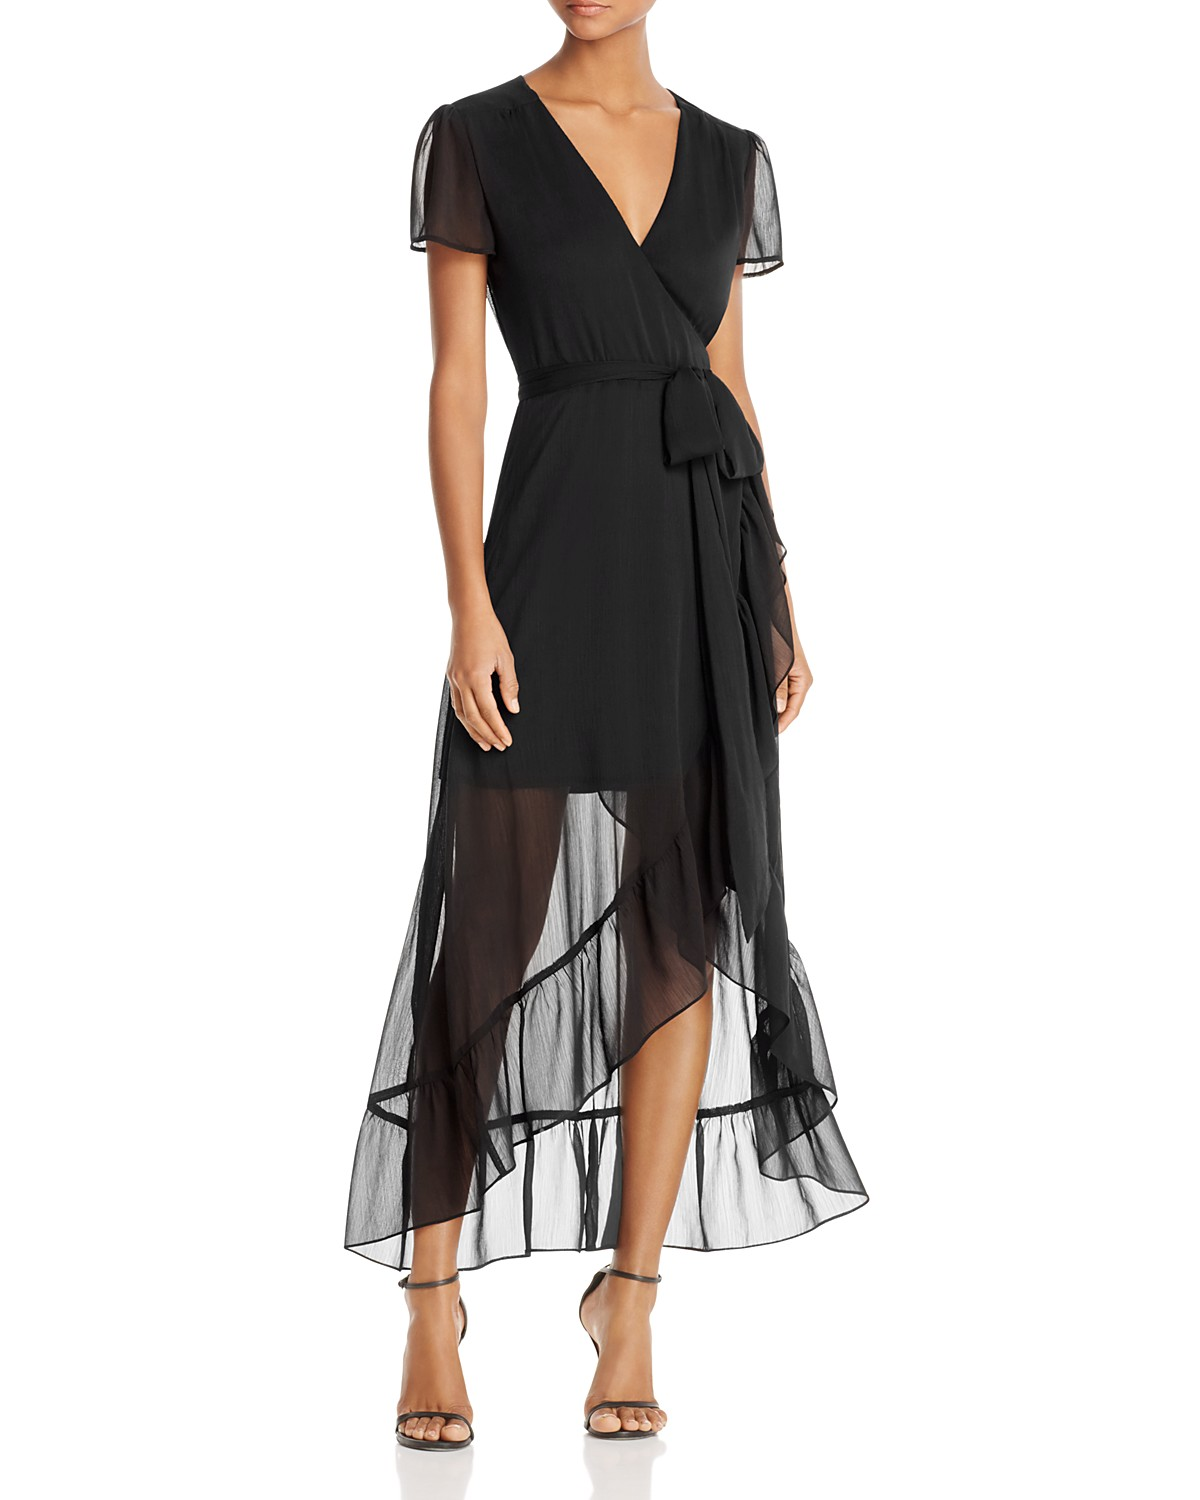 WAYF Ruffle Short-Sleeve Wrap Dress Image